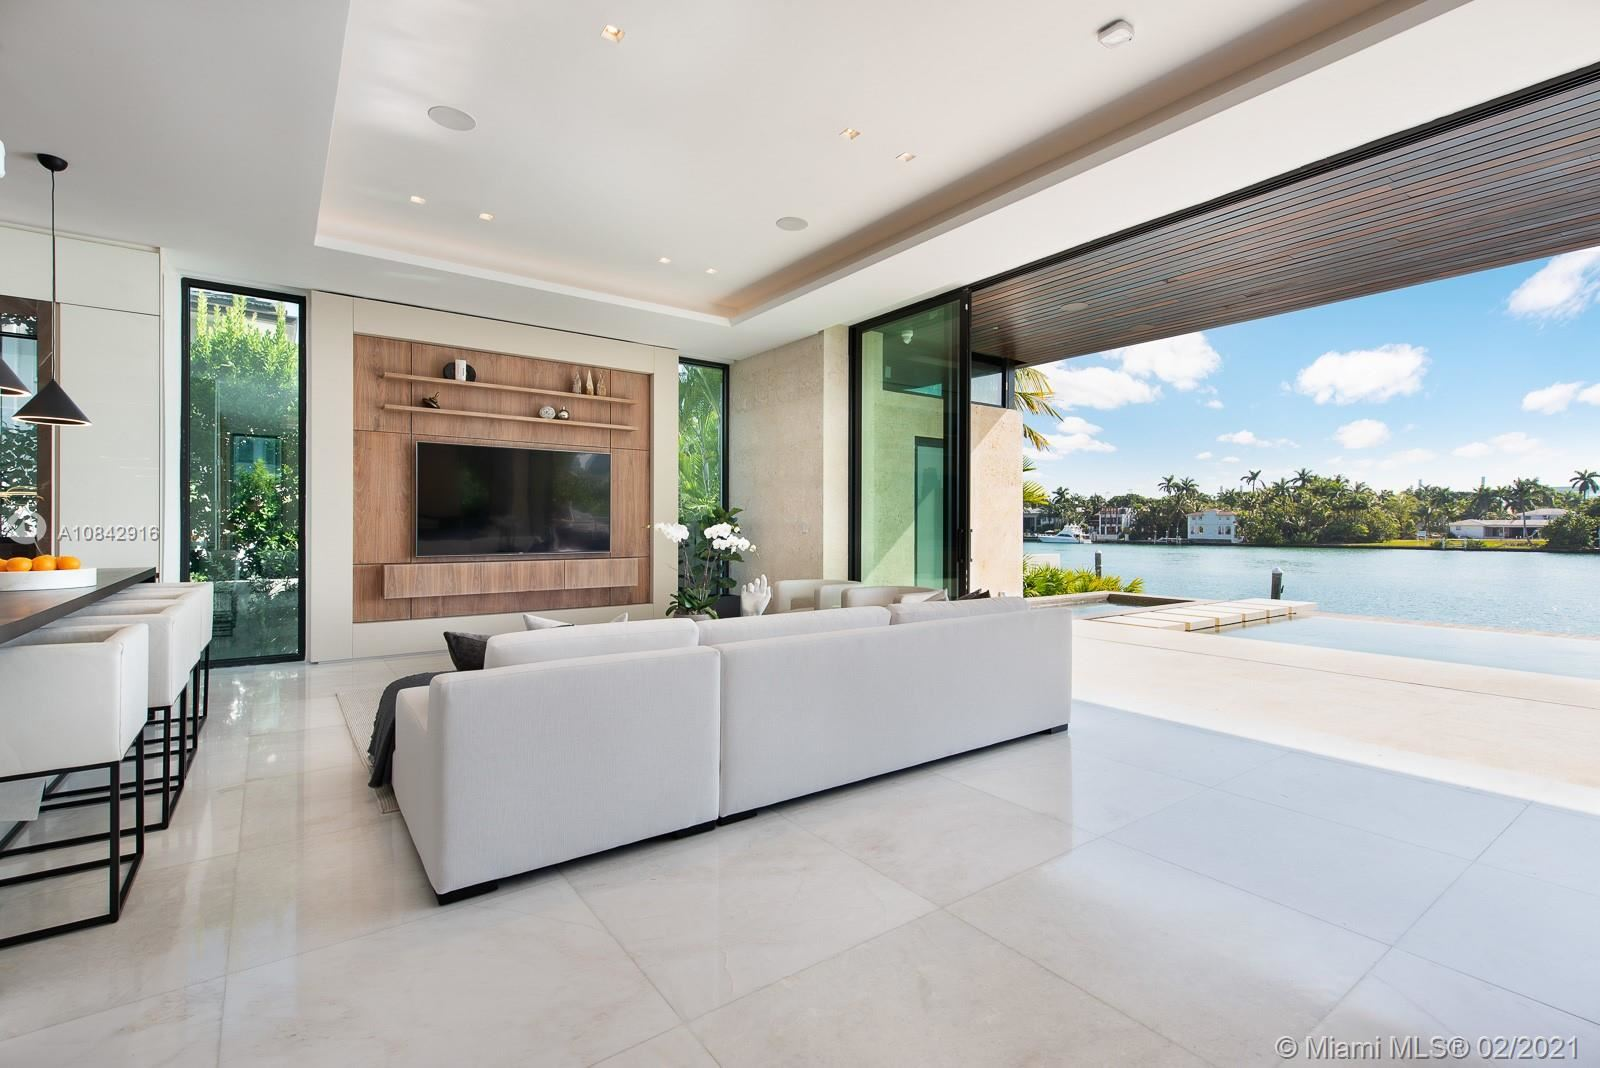 Photo 10 of Listing MLS a10842916 in 160 S Hibiscus Dr Miami Beach FL 33139